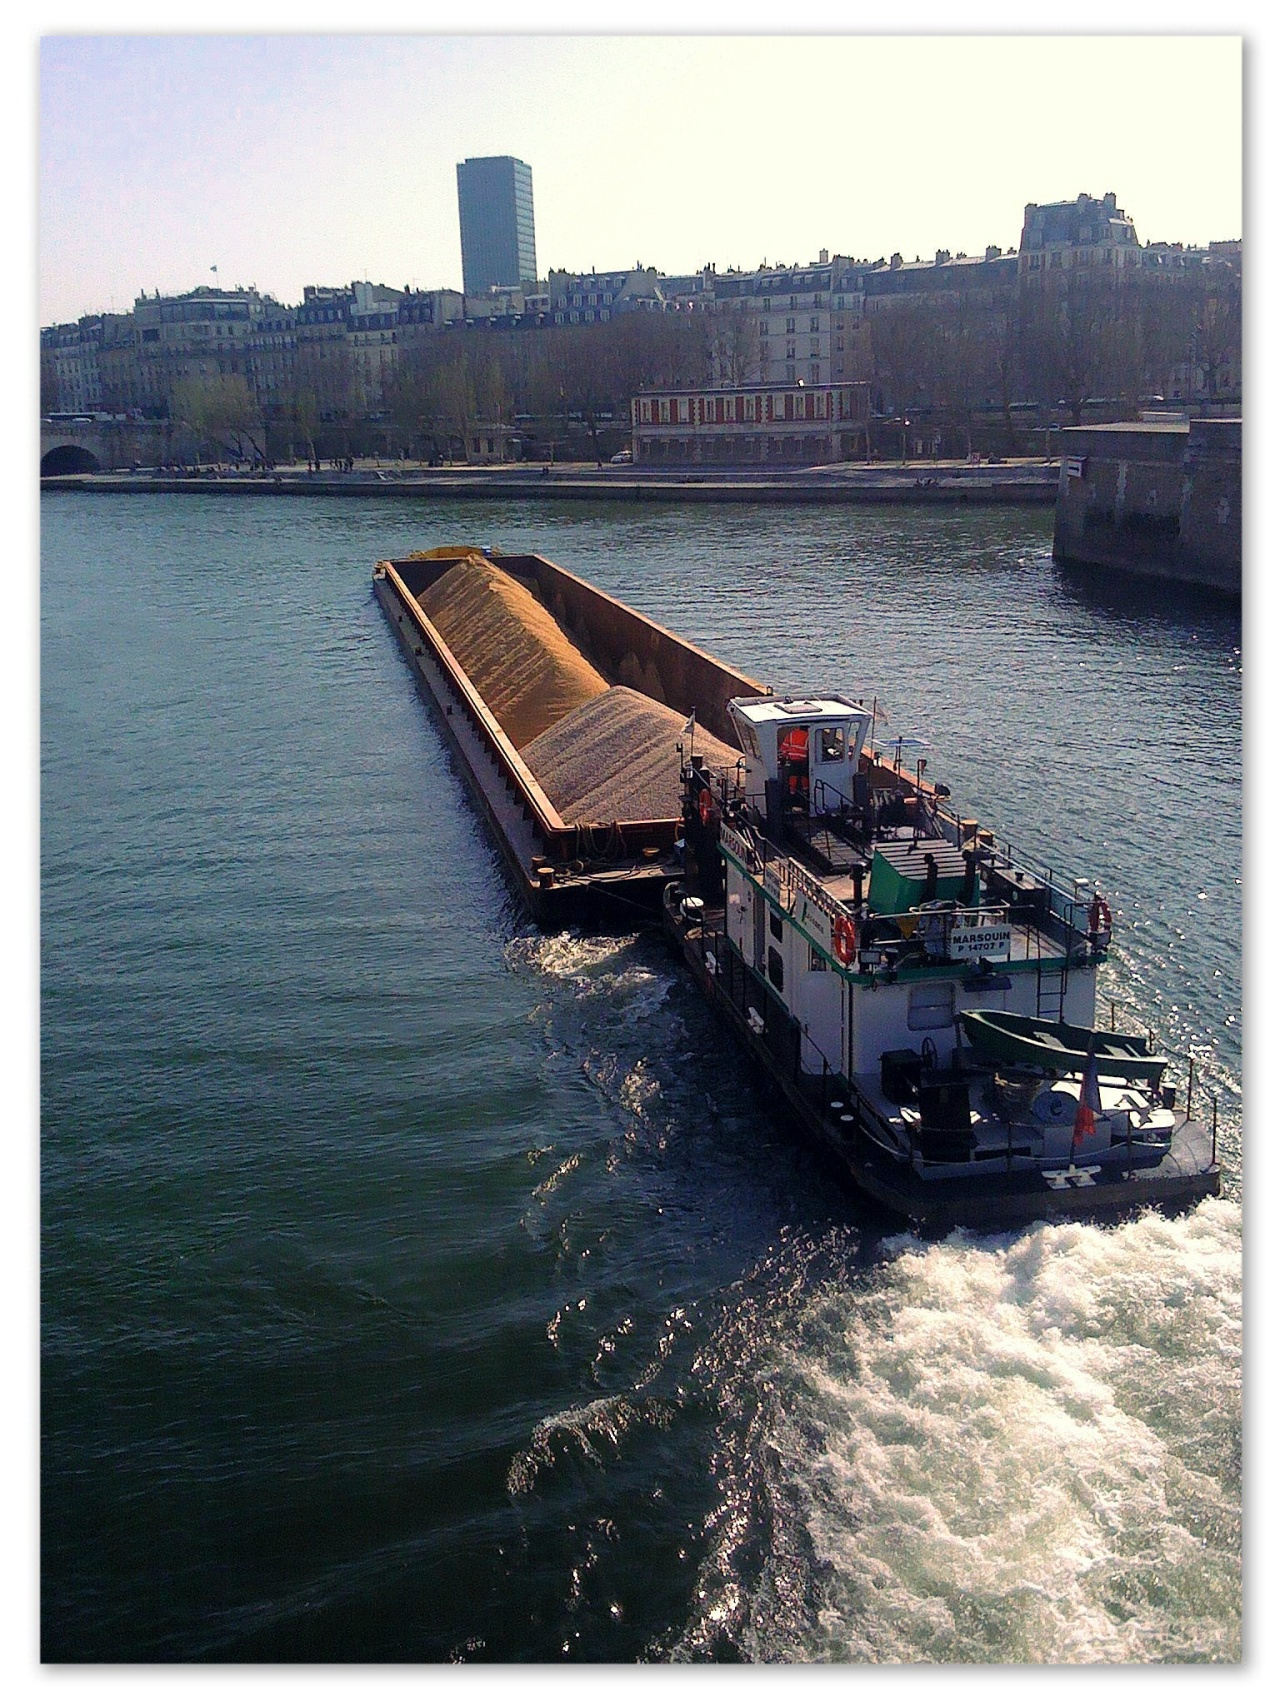 Barge on the Seine between Île Saint-Louis and Île de la Cité